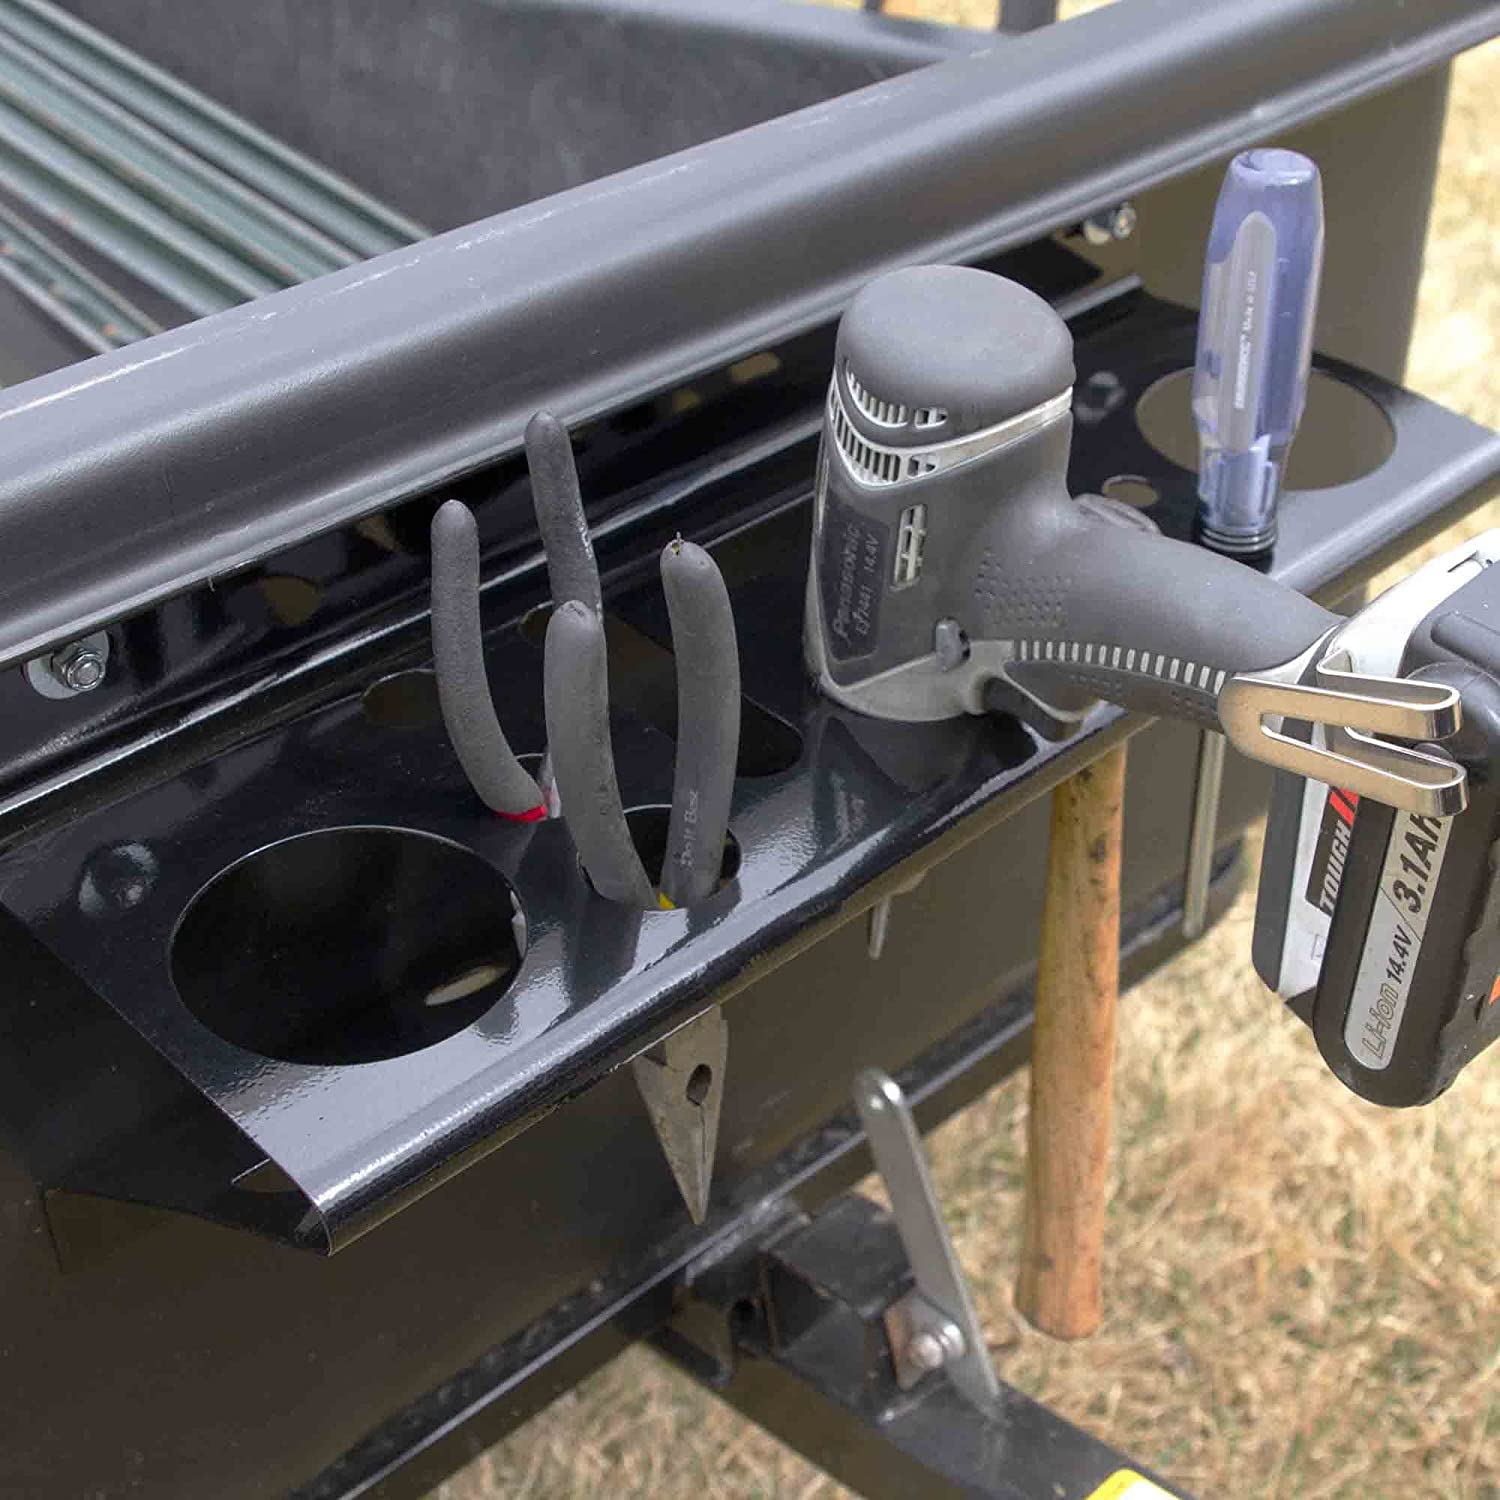 Polar Trailer Tow Behind Cart Tool Organizer and Carts Easy to Install Durable Build Useful Accessory Black 10518